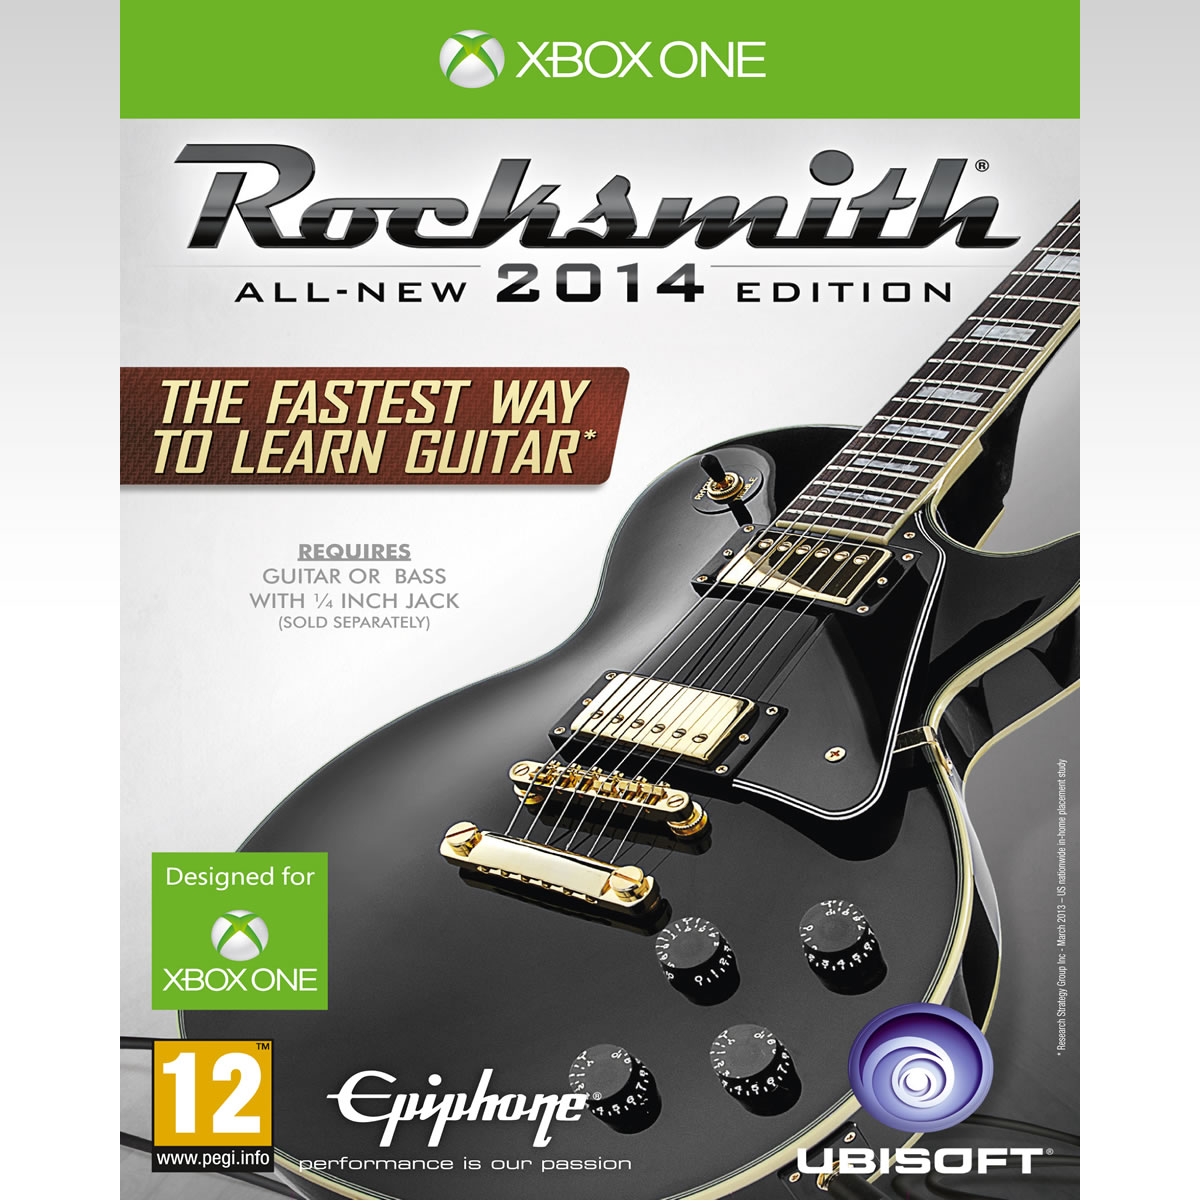 ROCKSMITH 2014 EDITION + CABLE (XBOX ONE)